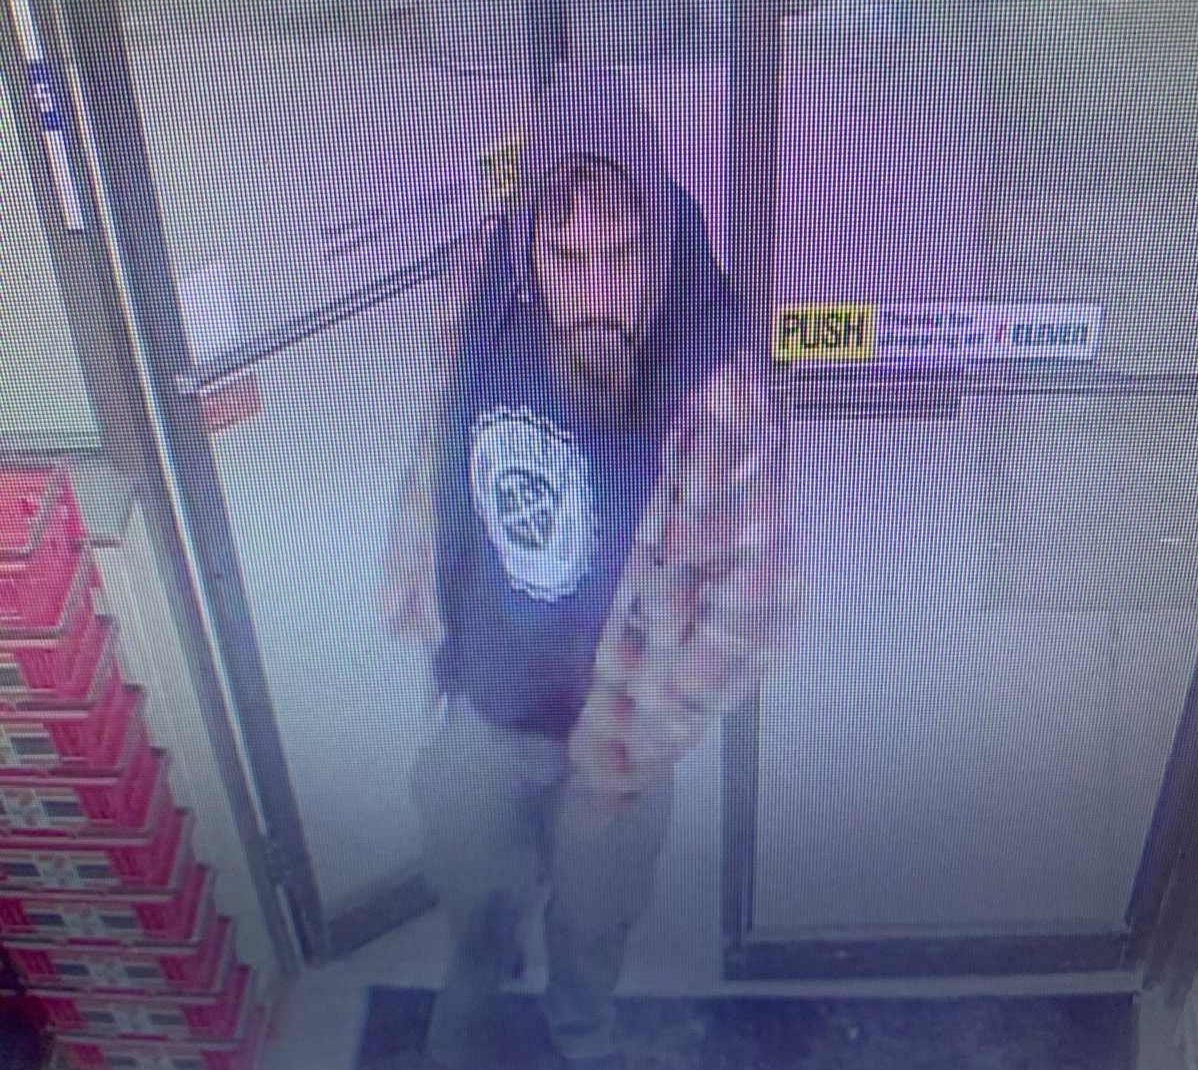 Stratford police released an image of the suspect.